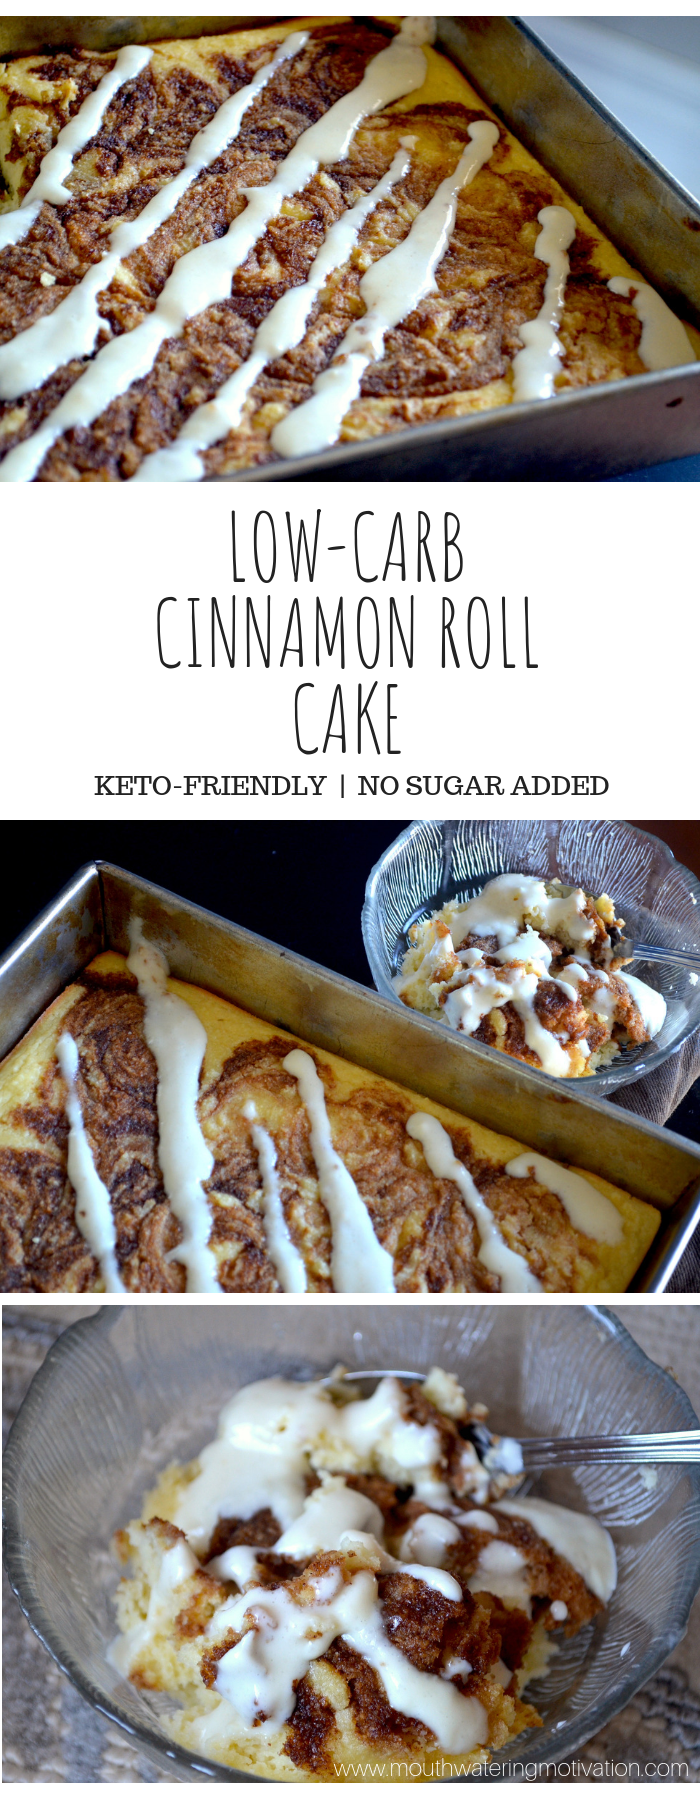 LOW-CARB CINNAMON ROLL CAKE.png